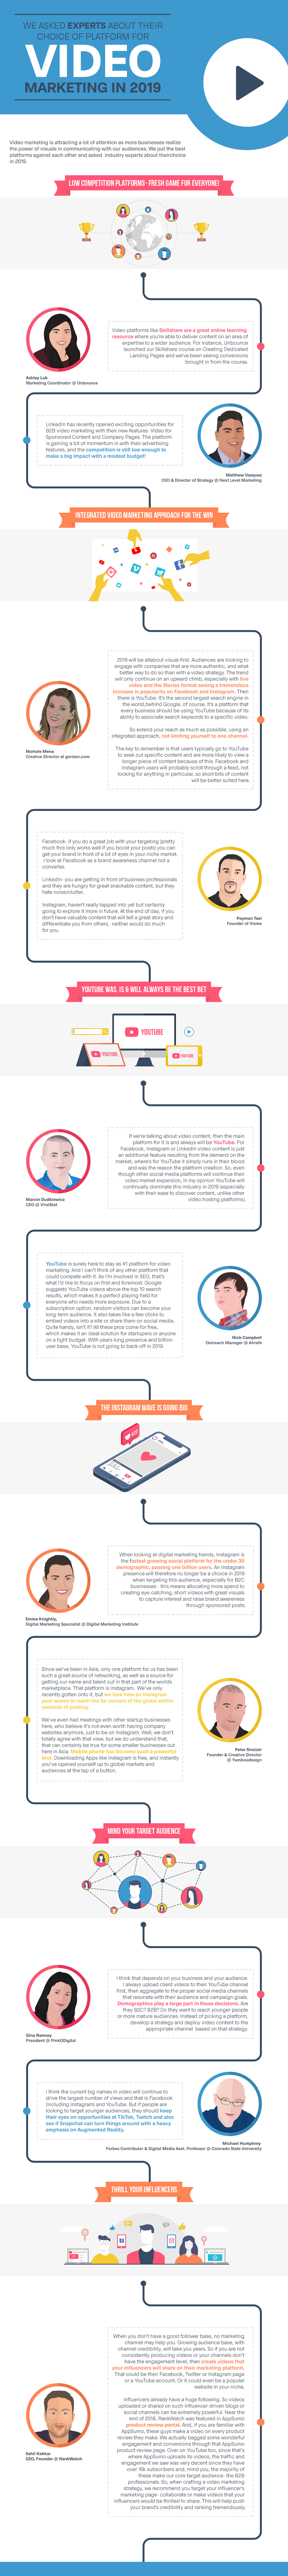 Video Marketing Platform Of Choice For 2019- Infographic | Expert Roundup- Unbounce, Ahref, Forbes